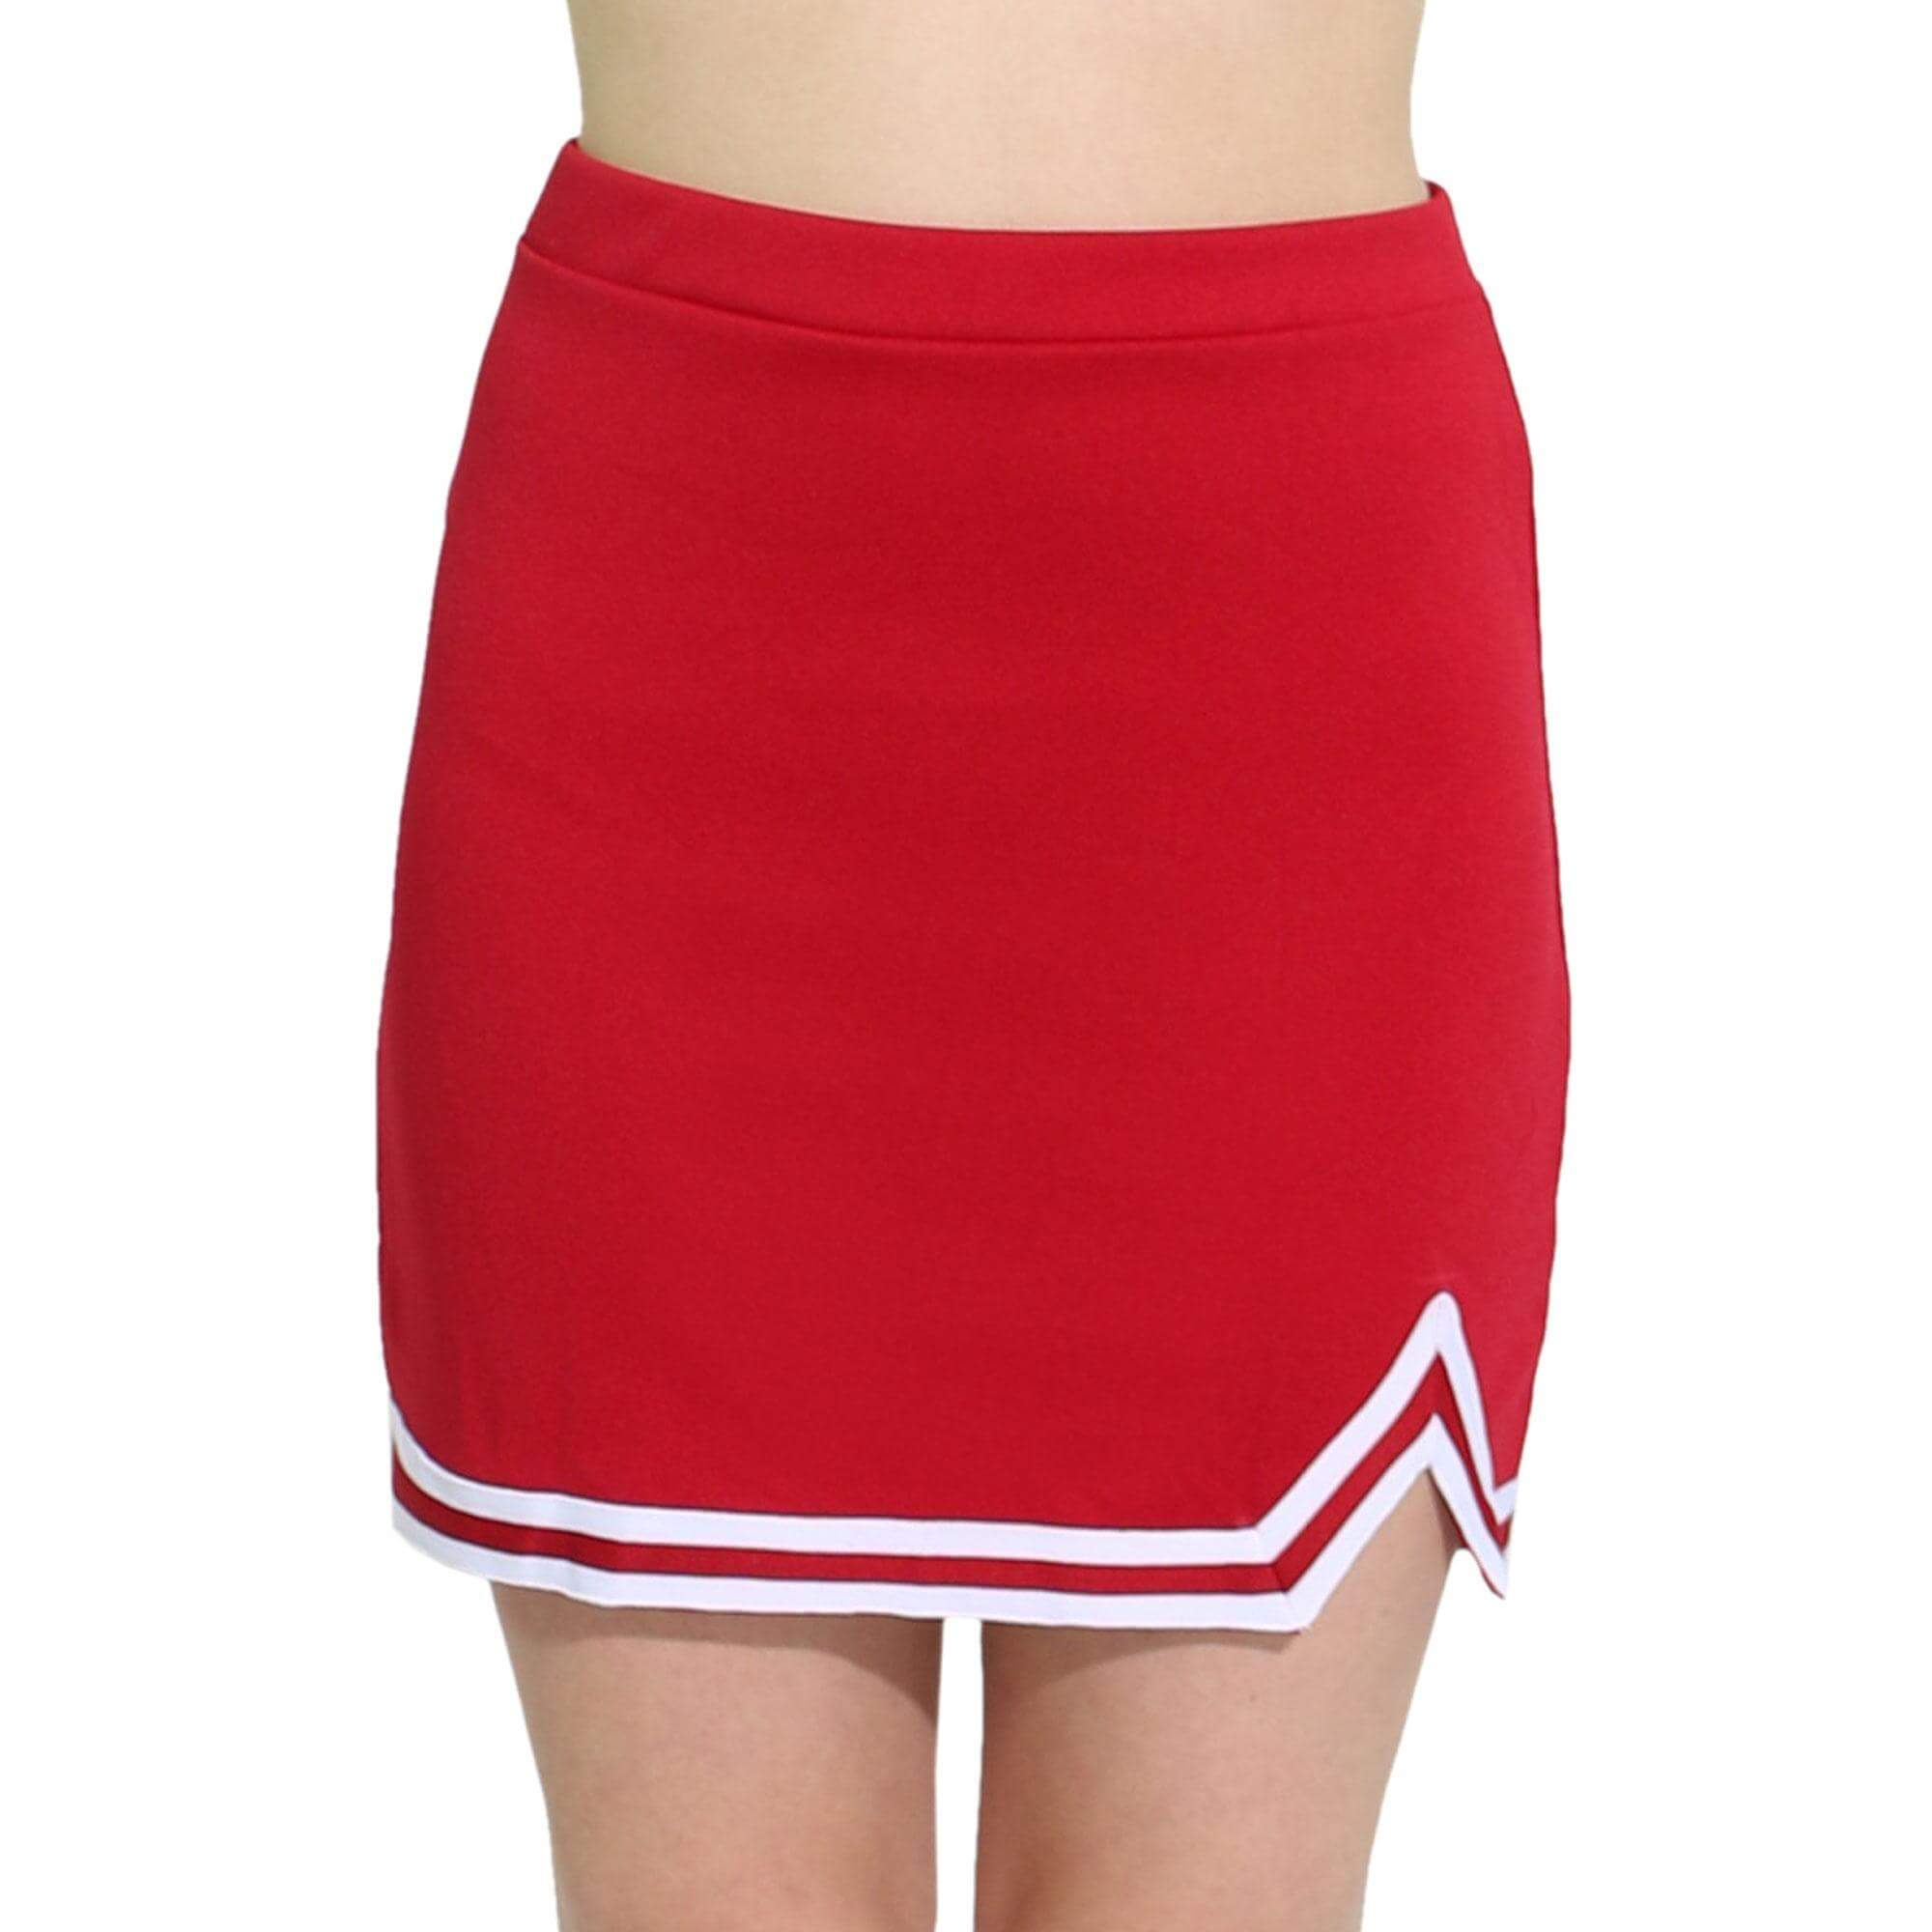 Danzcue Adult Double V A-Line Cheerleaders Uniform Skirt